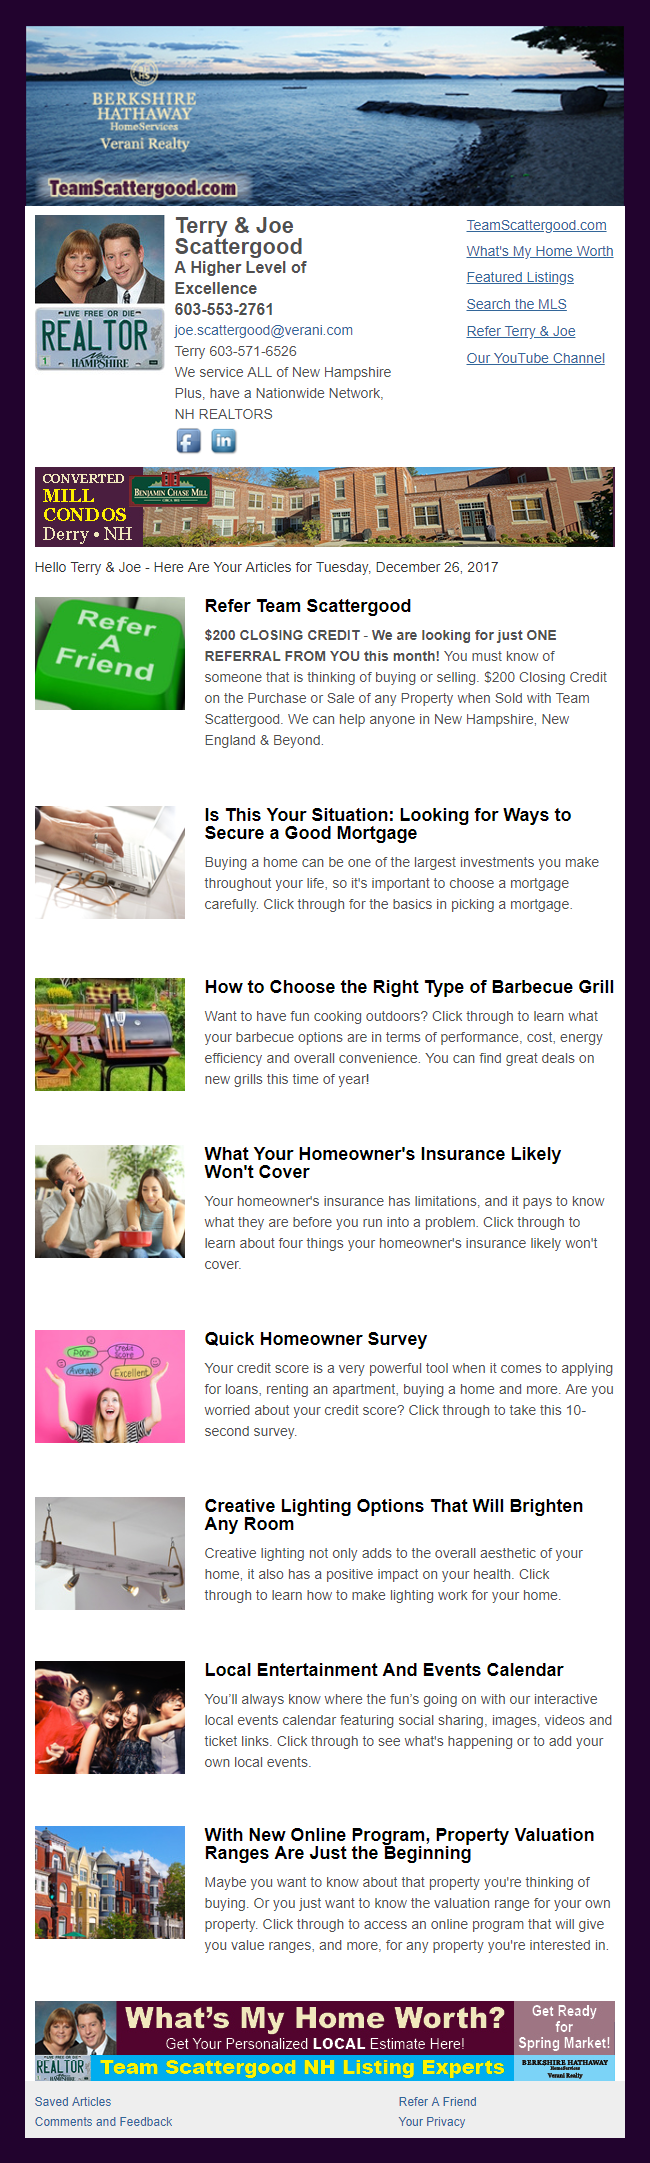 Berkshire Hathaway - HomeActions Sample Email Newsletter